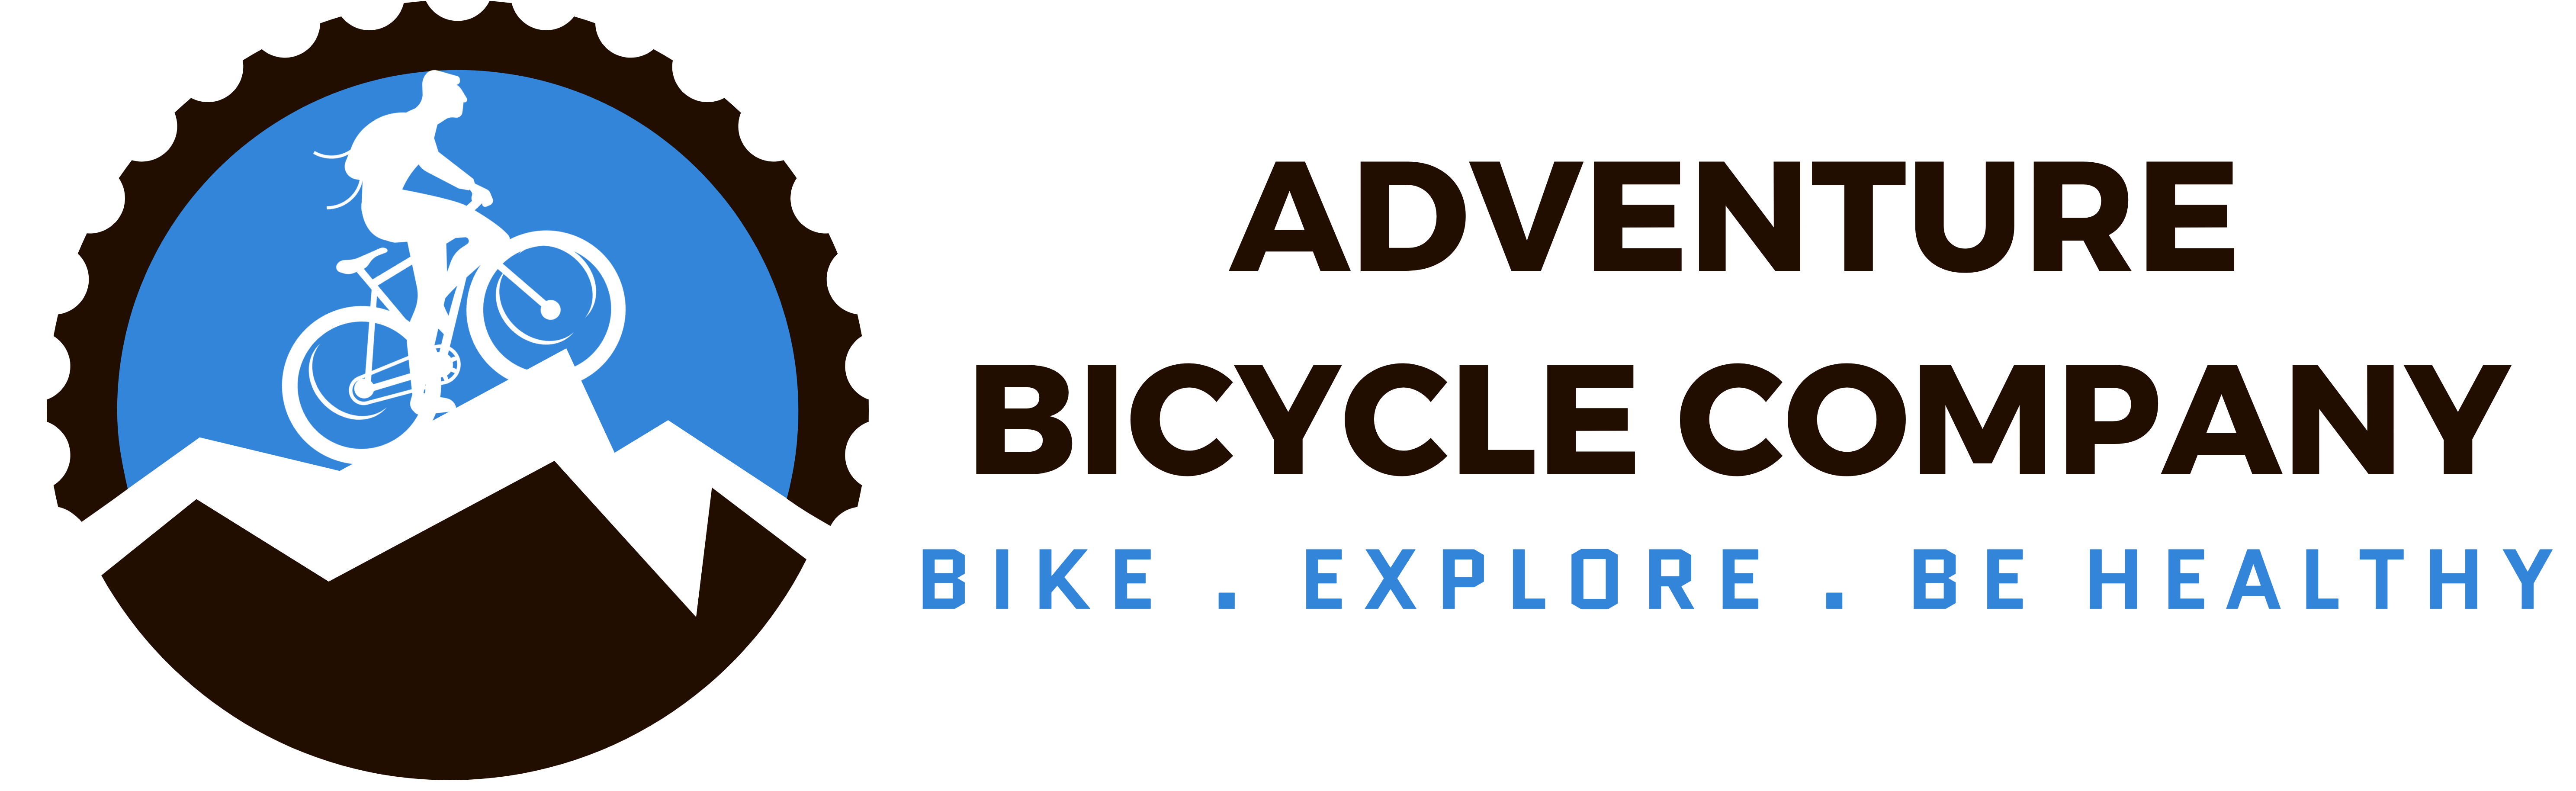 Adventure Bicycle Company Home Page